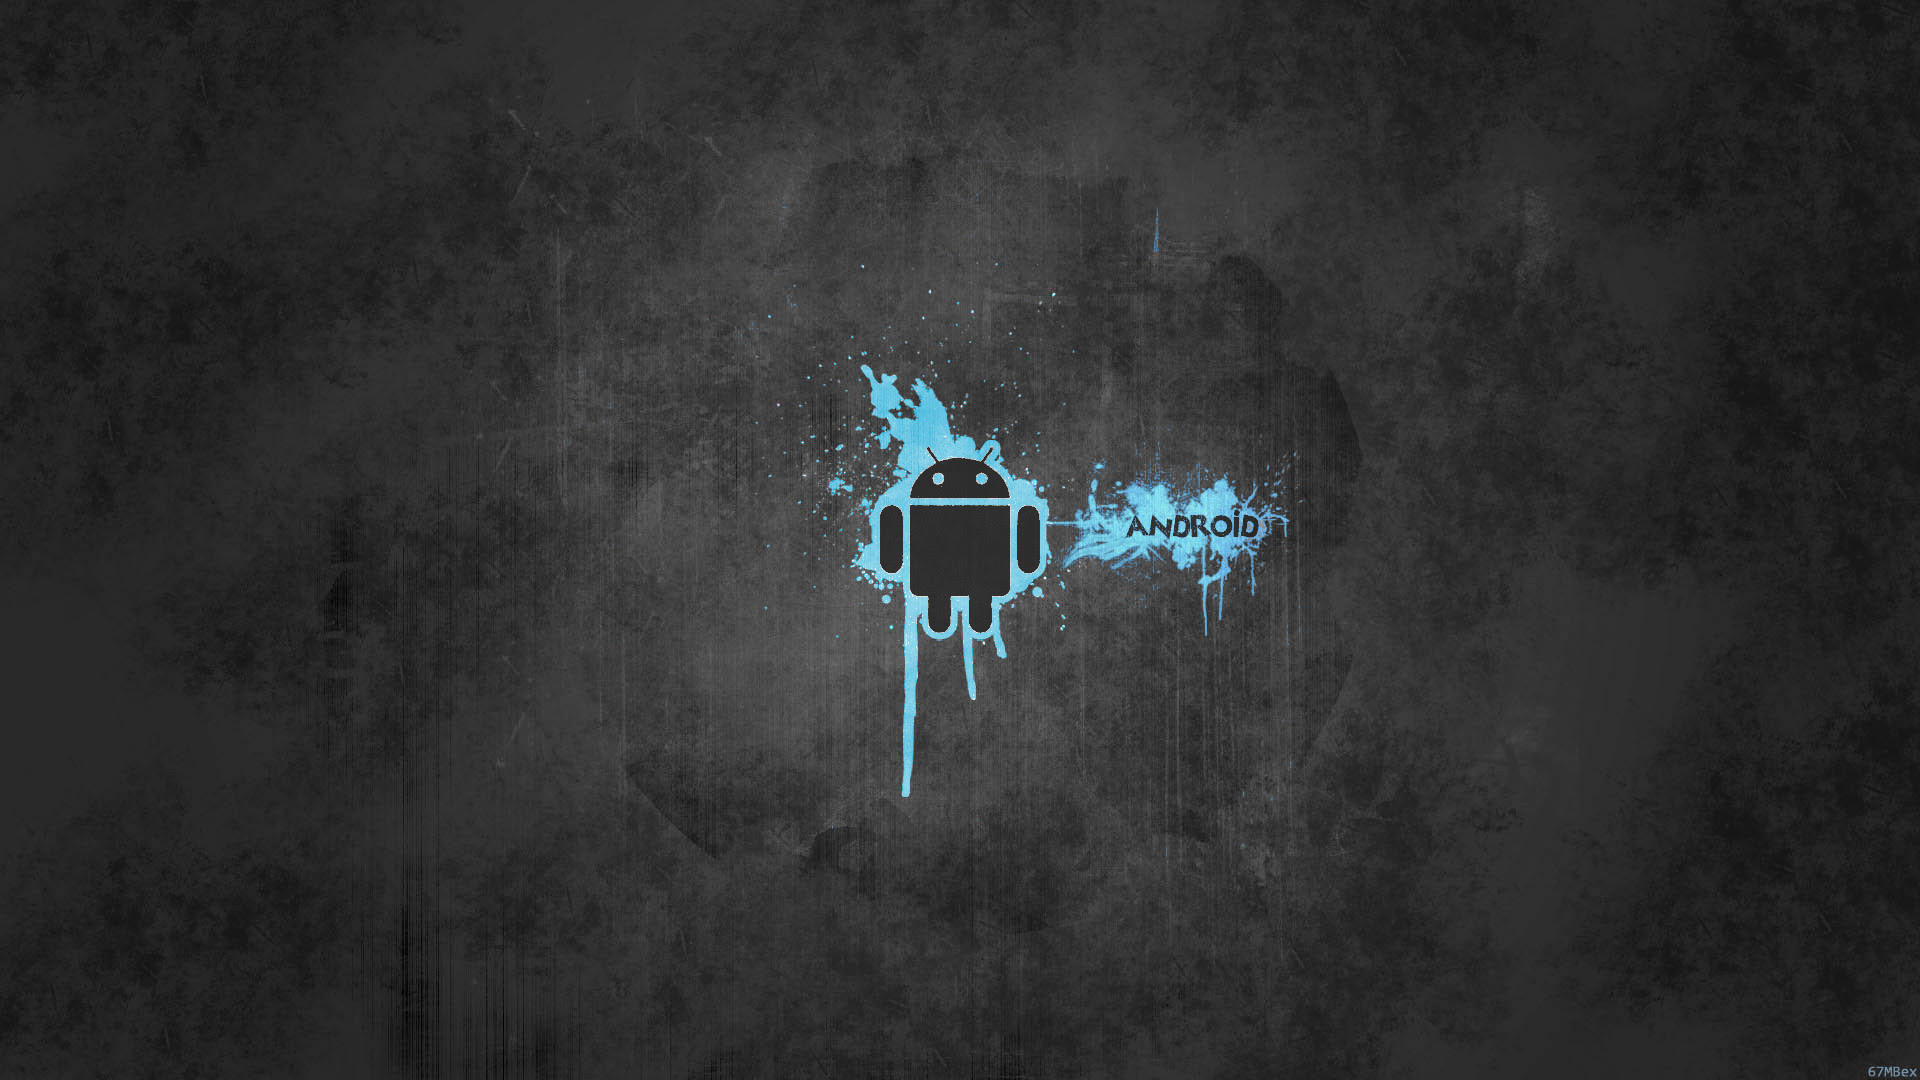 2000+ Wallpaper Android Zip  Paling Baru